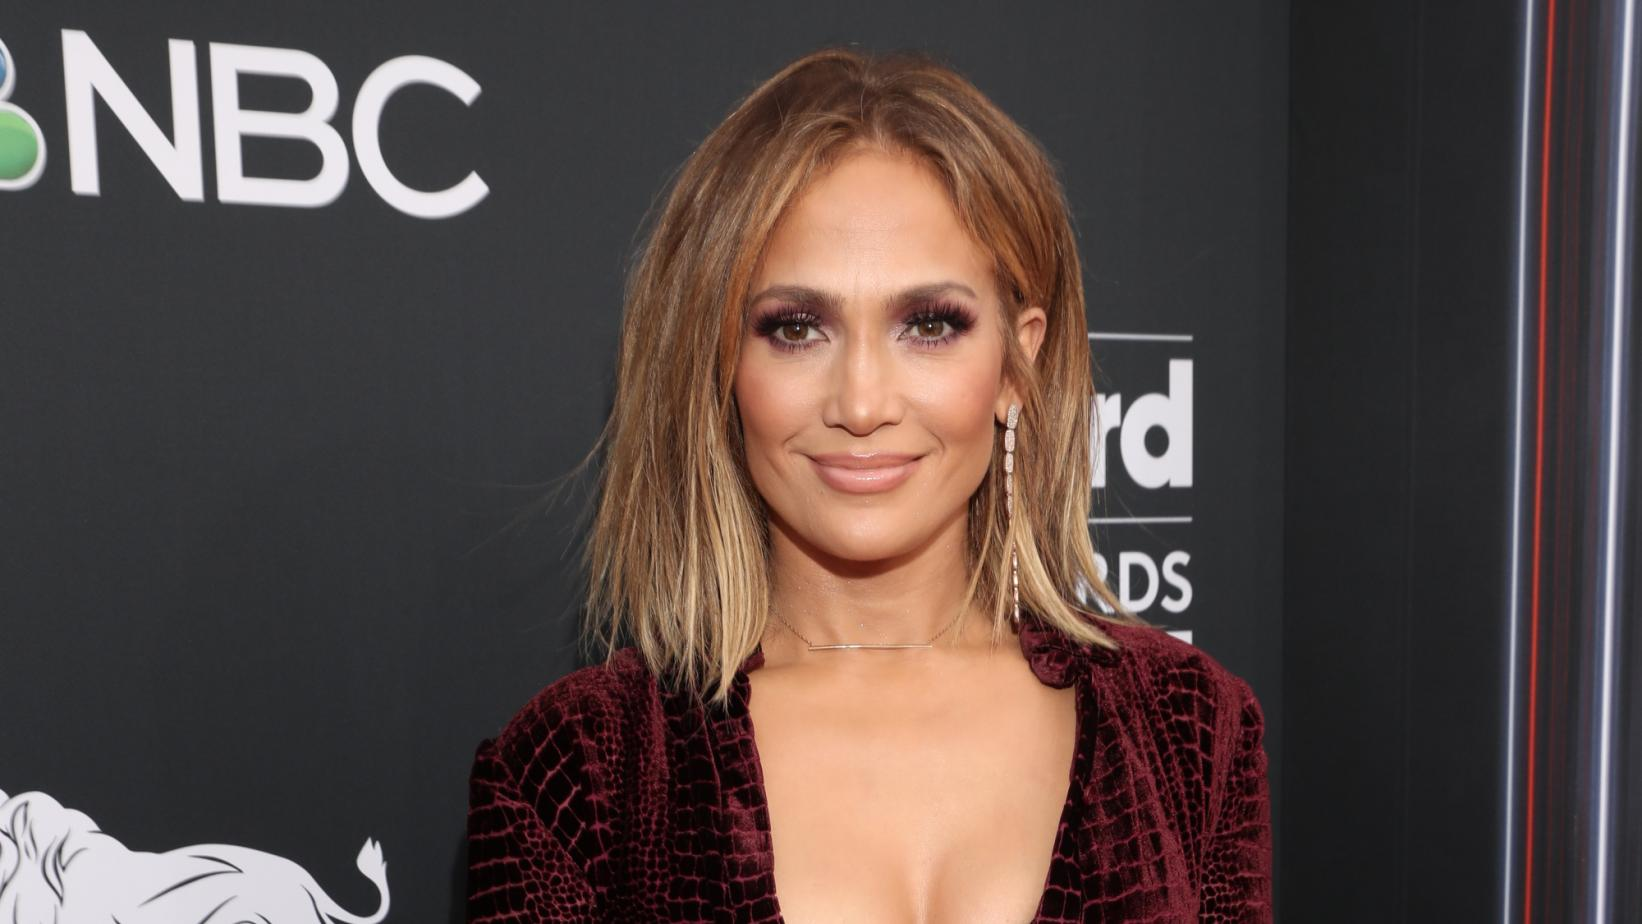 Jennifer-Lopez-Wiki-Biography-Age-Height-Weight-Profile-Body Measurement